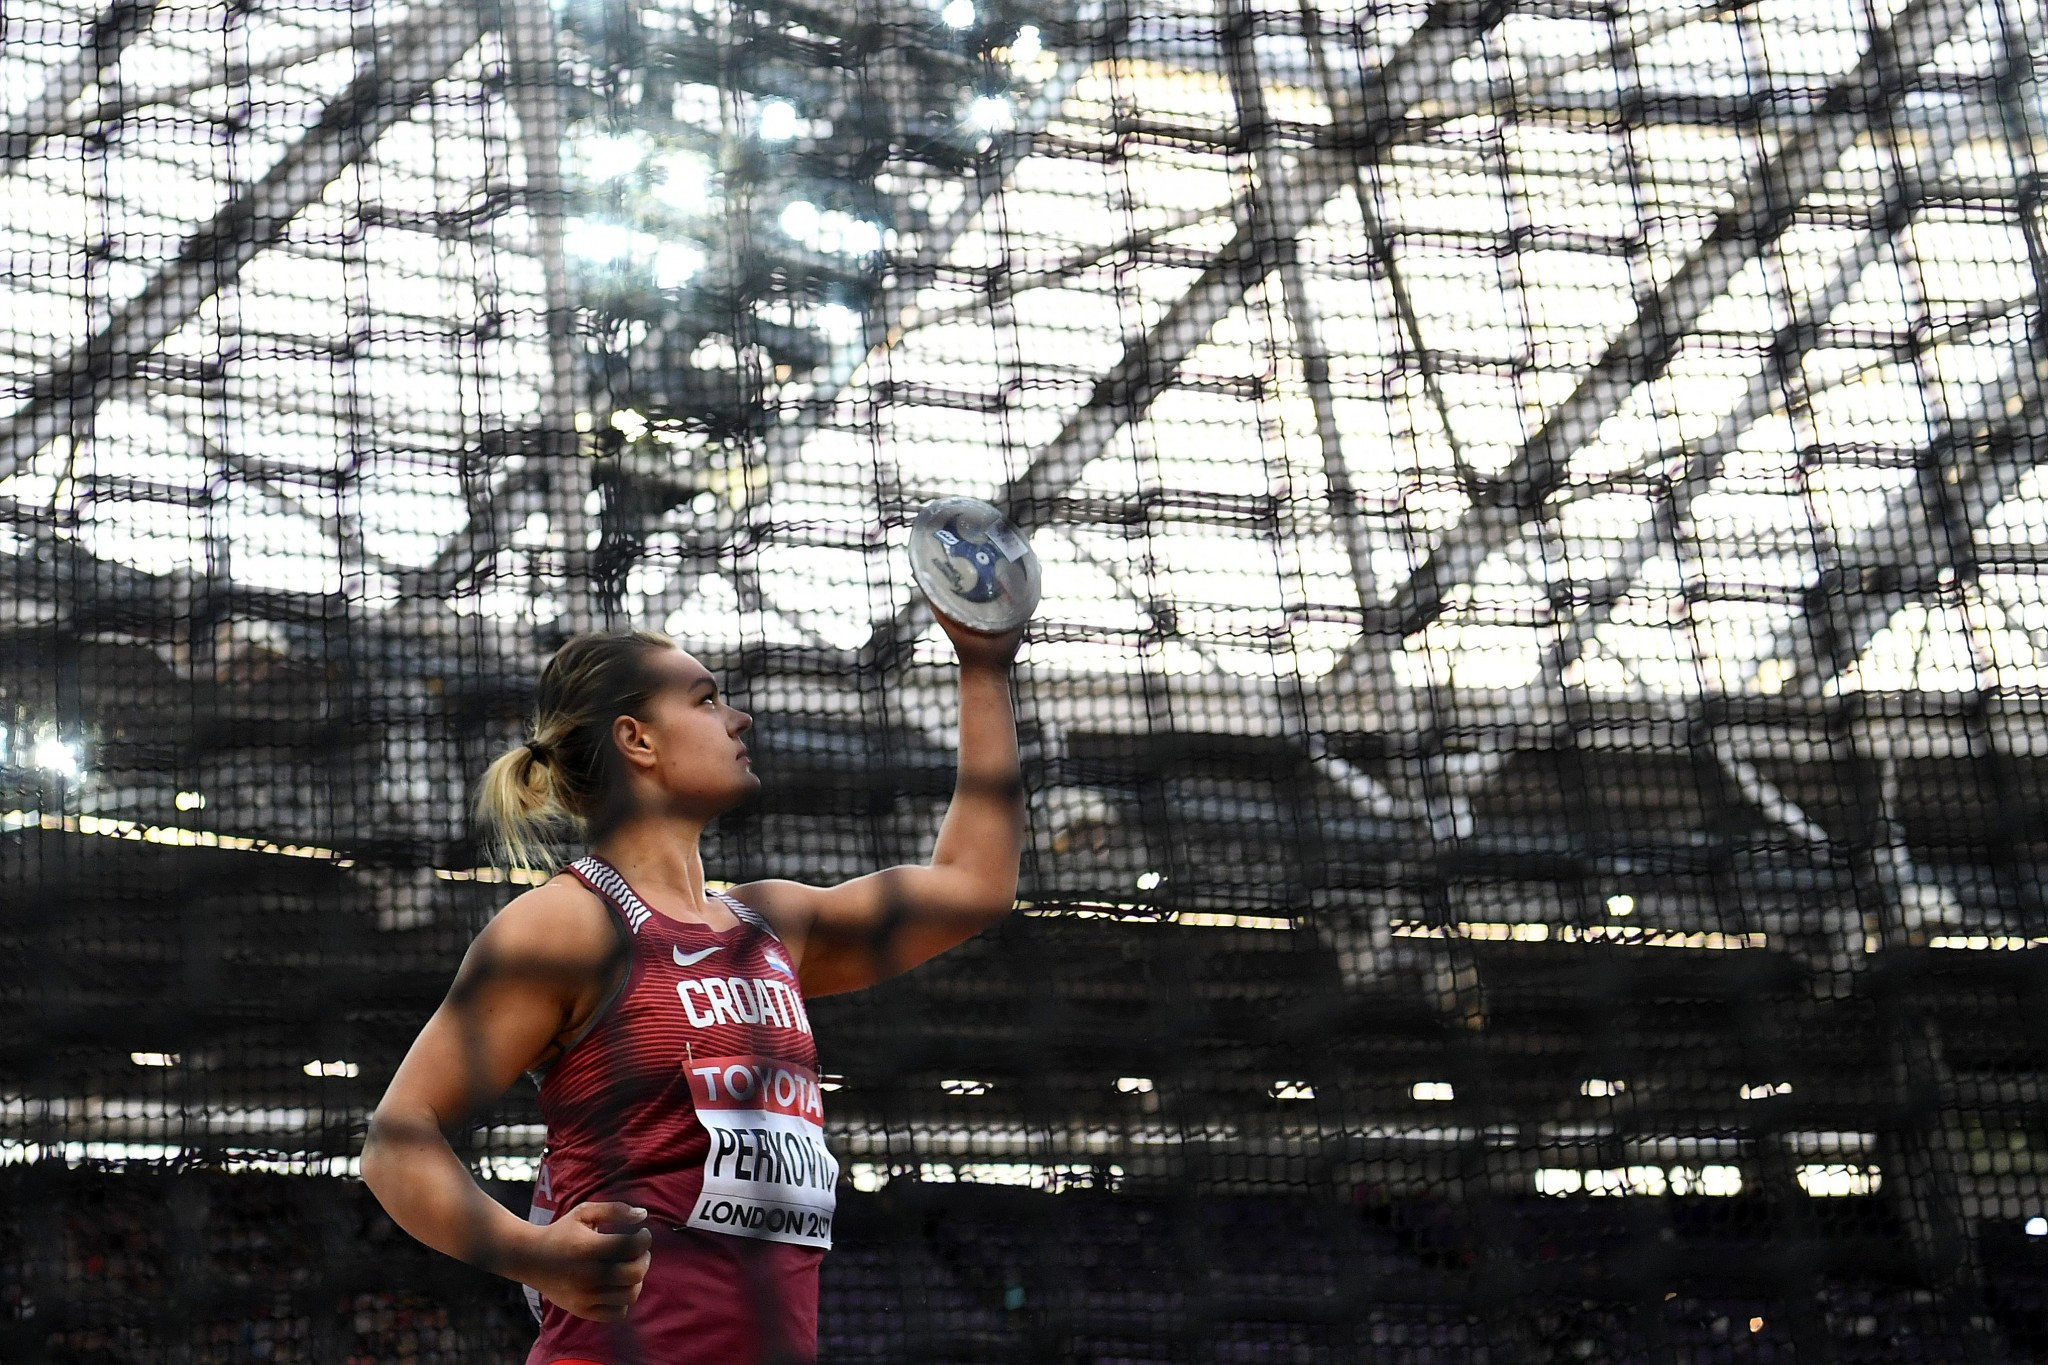 Croatia's Sandra Perkovic dominated the women's discus event ©Getty Images